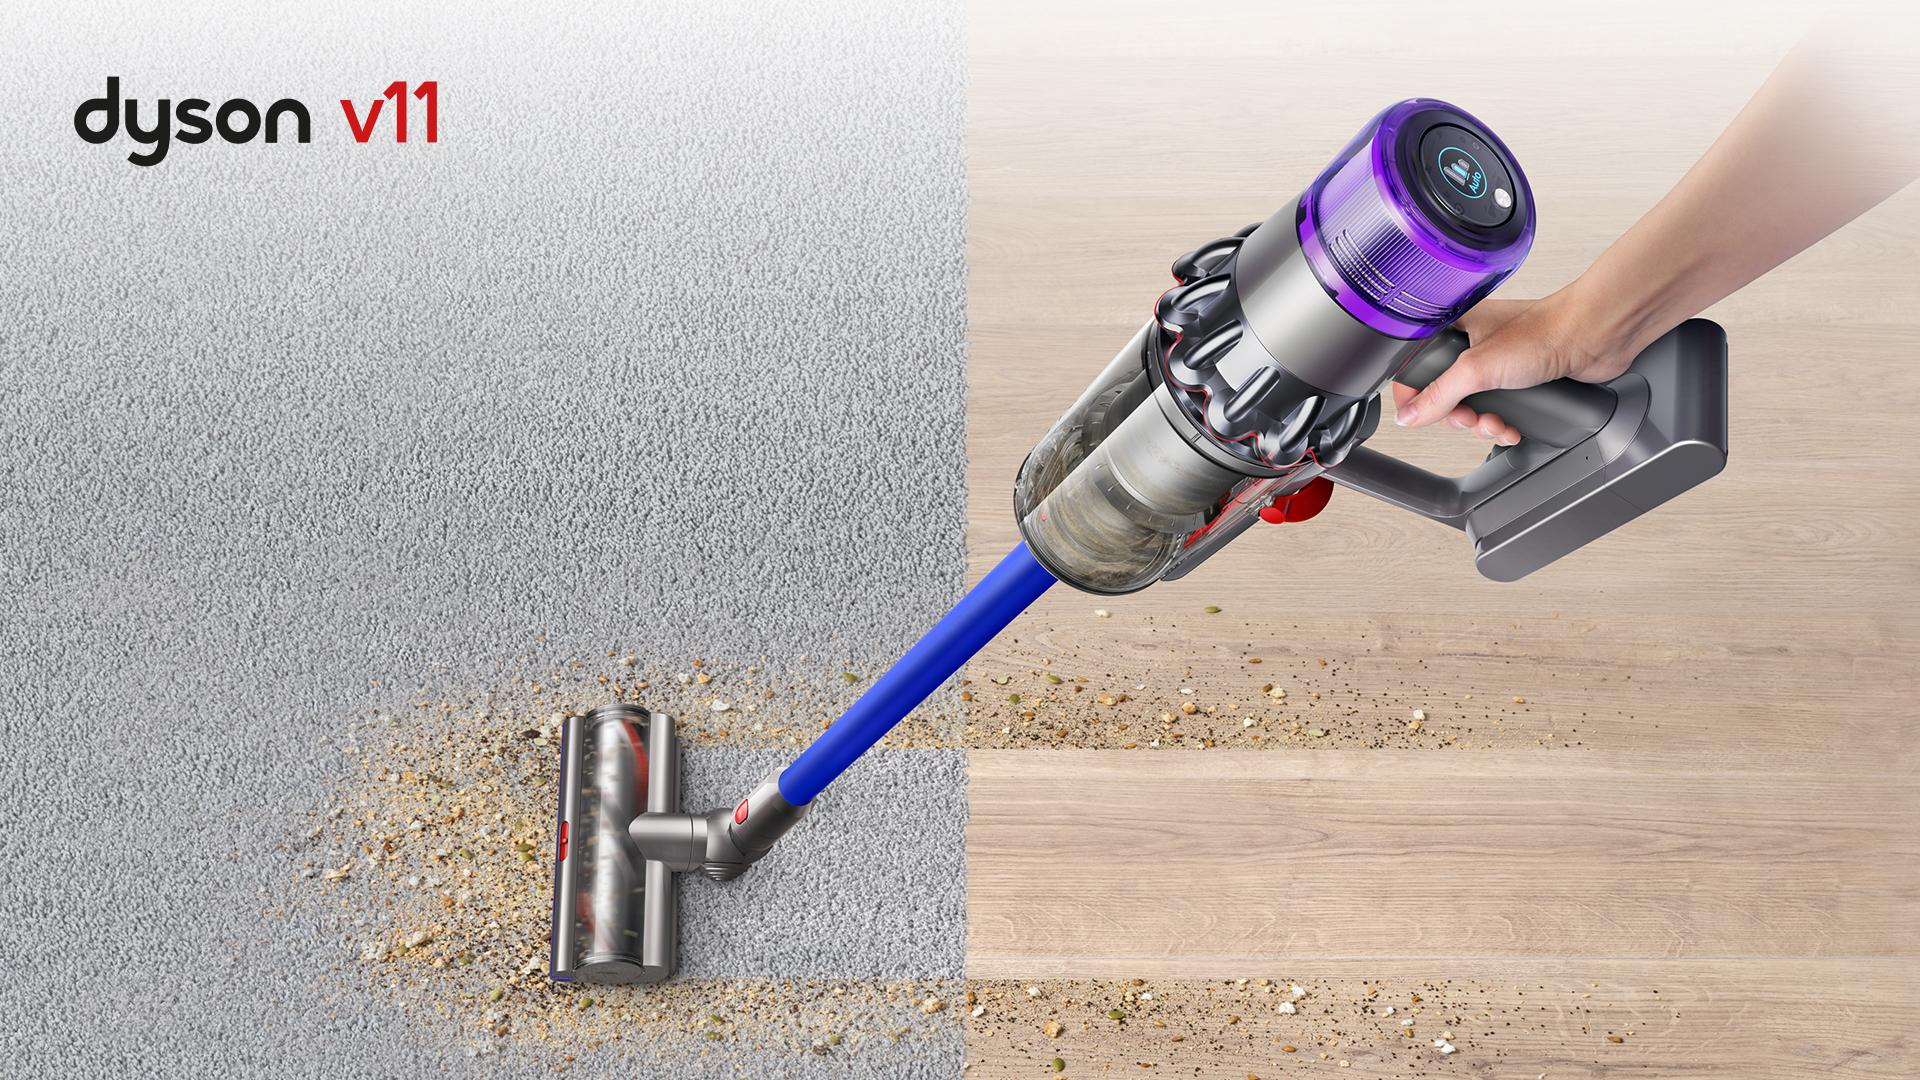 Dyson v11 being used on carpet and hardfloor